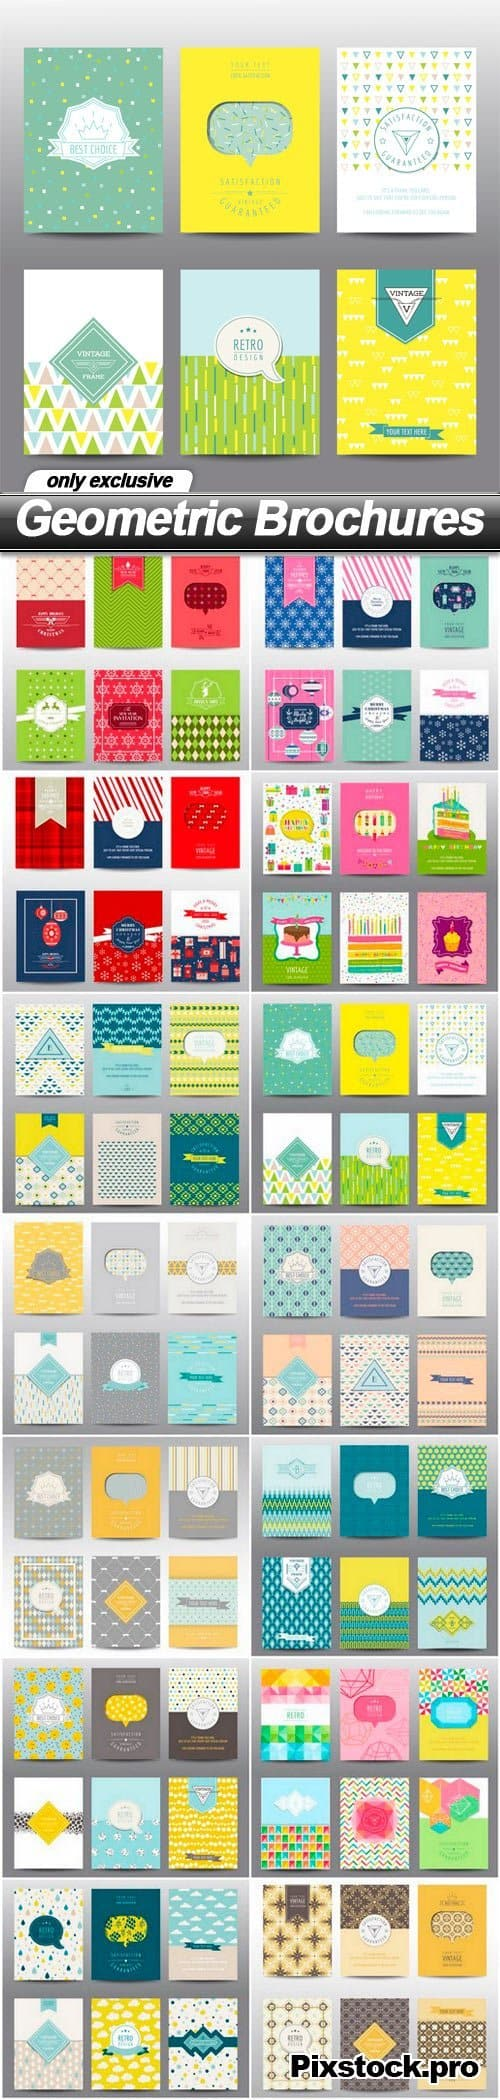 Geometric Brochures – 14 EPS